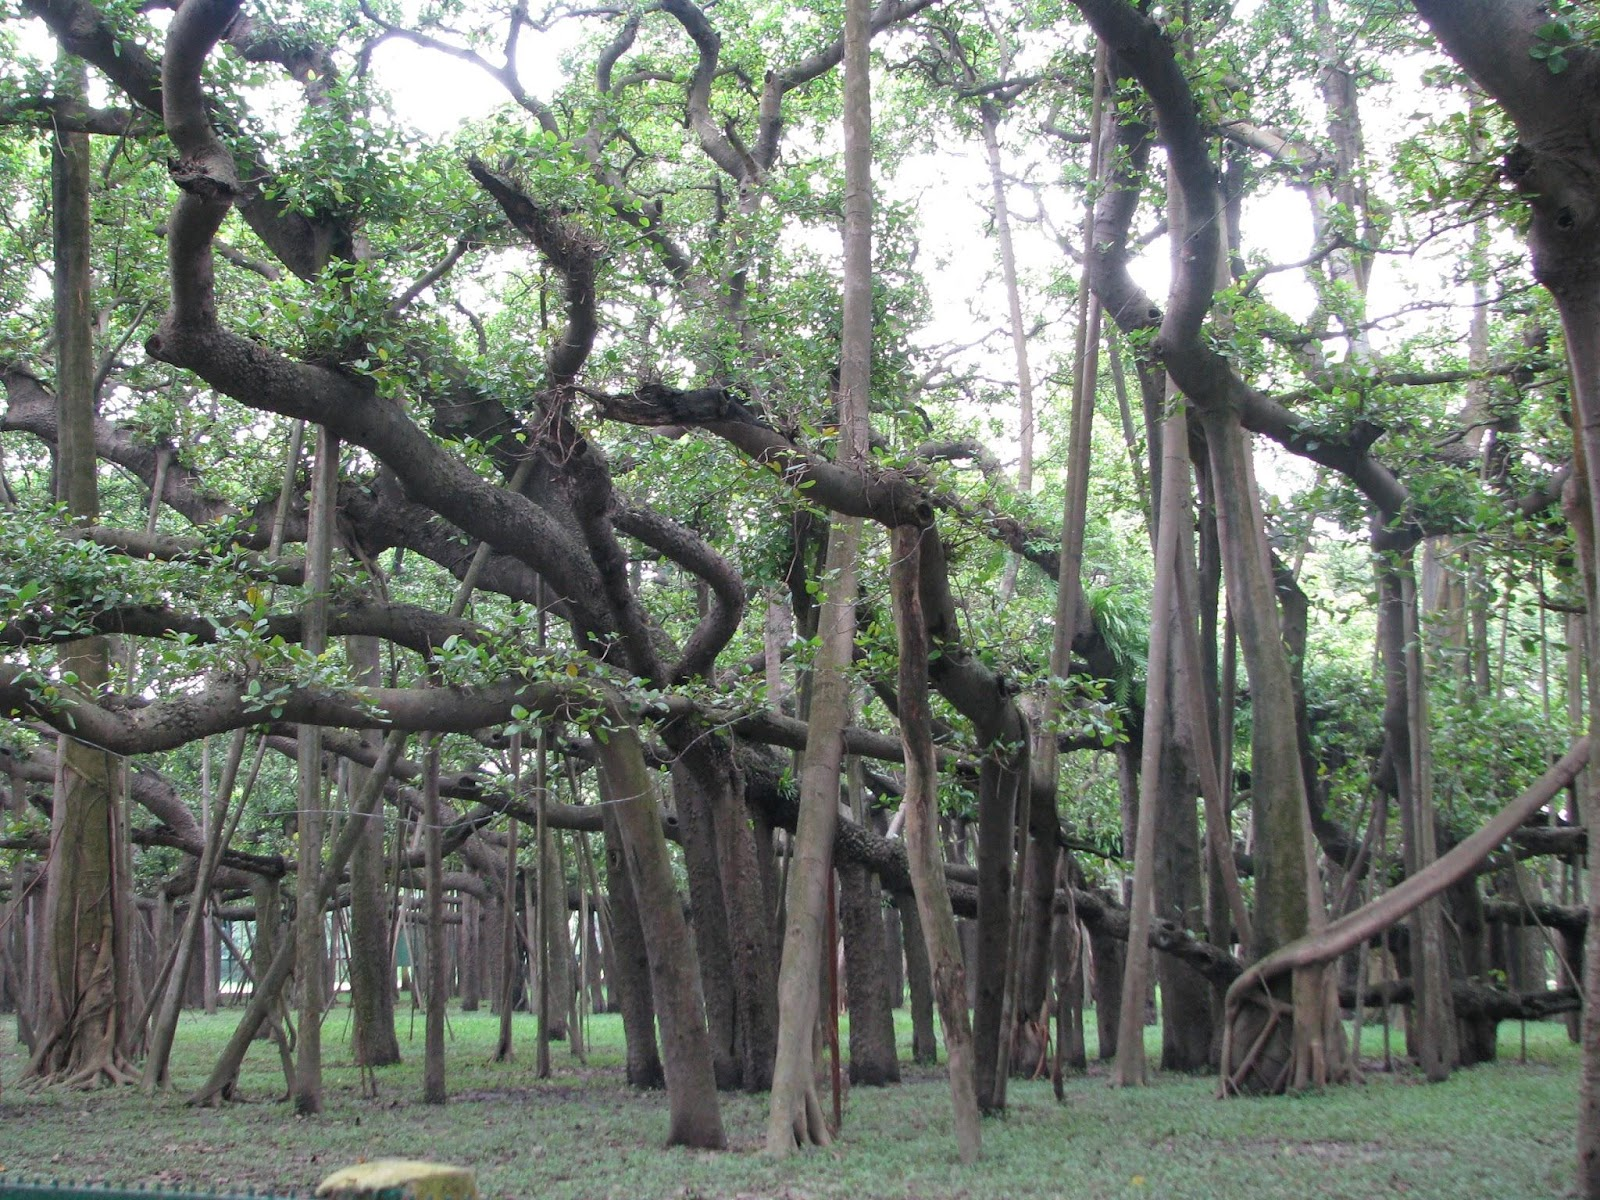 From https://upload.wikimedia.org/wikipedia/commons/9/9f/Great_banyan_tree_kol.jpg This file is licensed under the Creative Commons Attribution 2.0 Generic license.